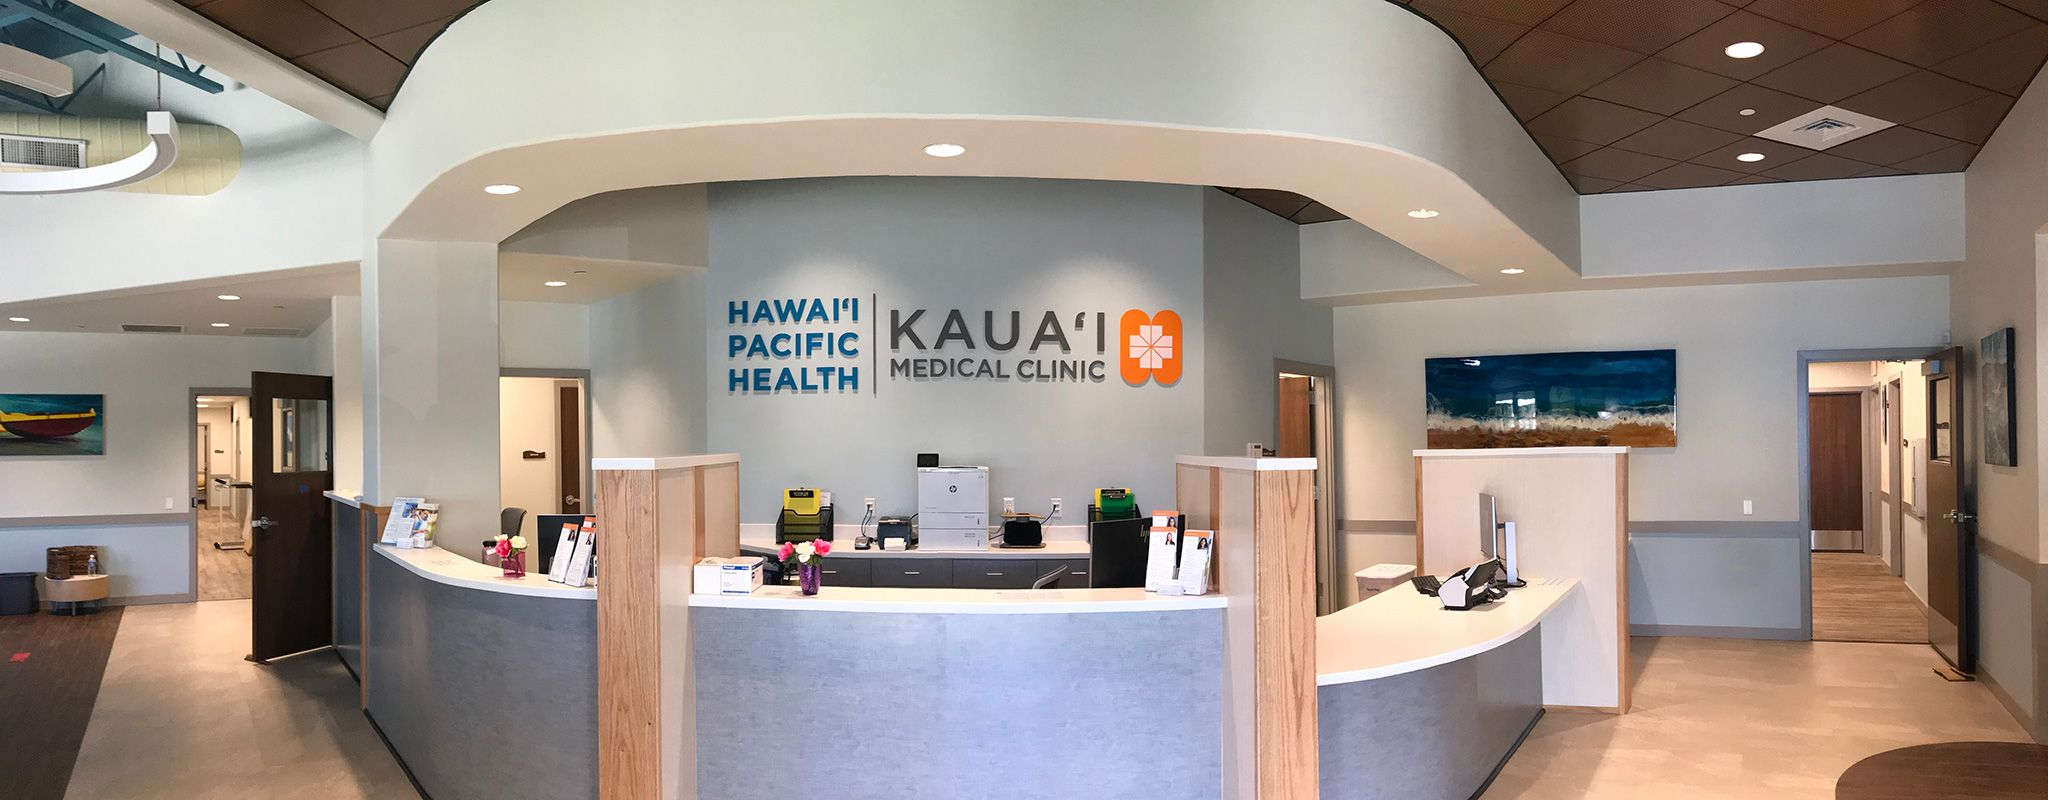 Kauai Medical Clinic